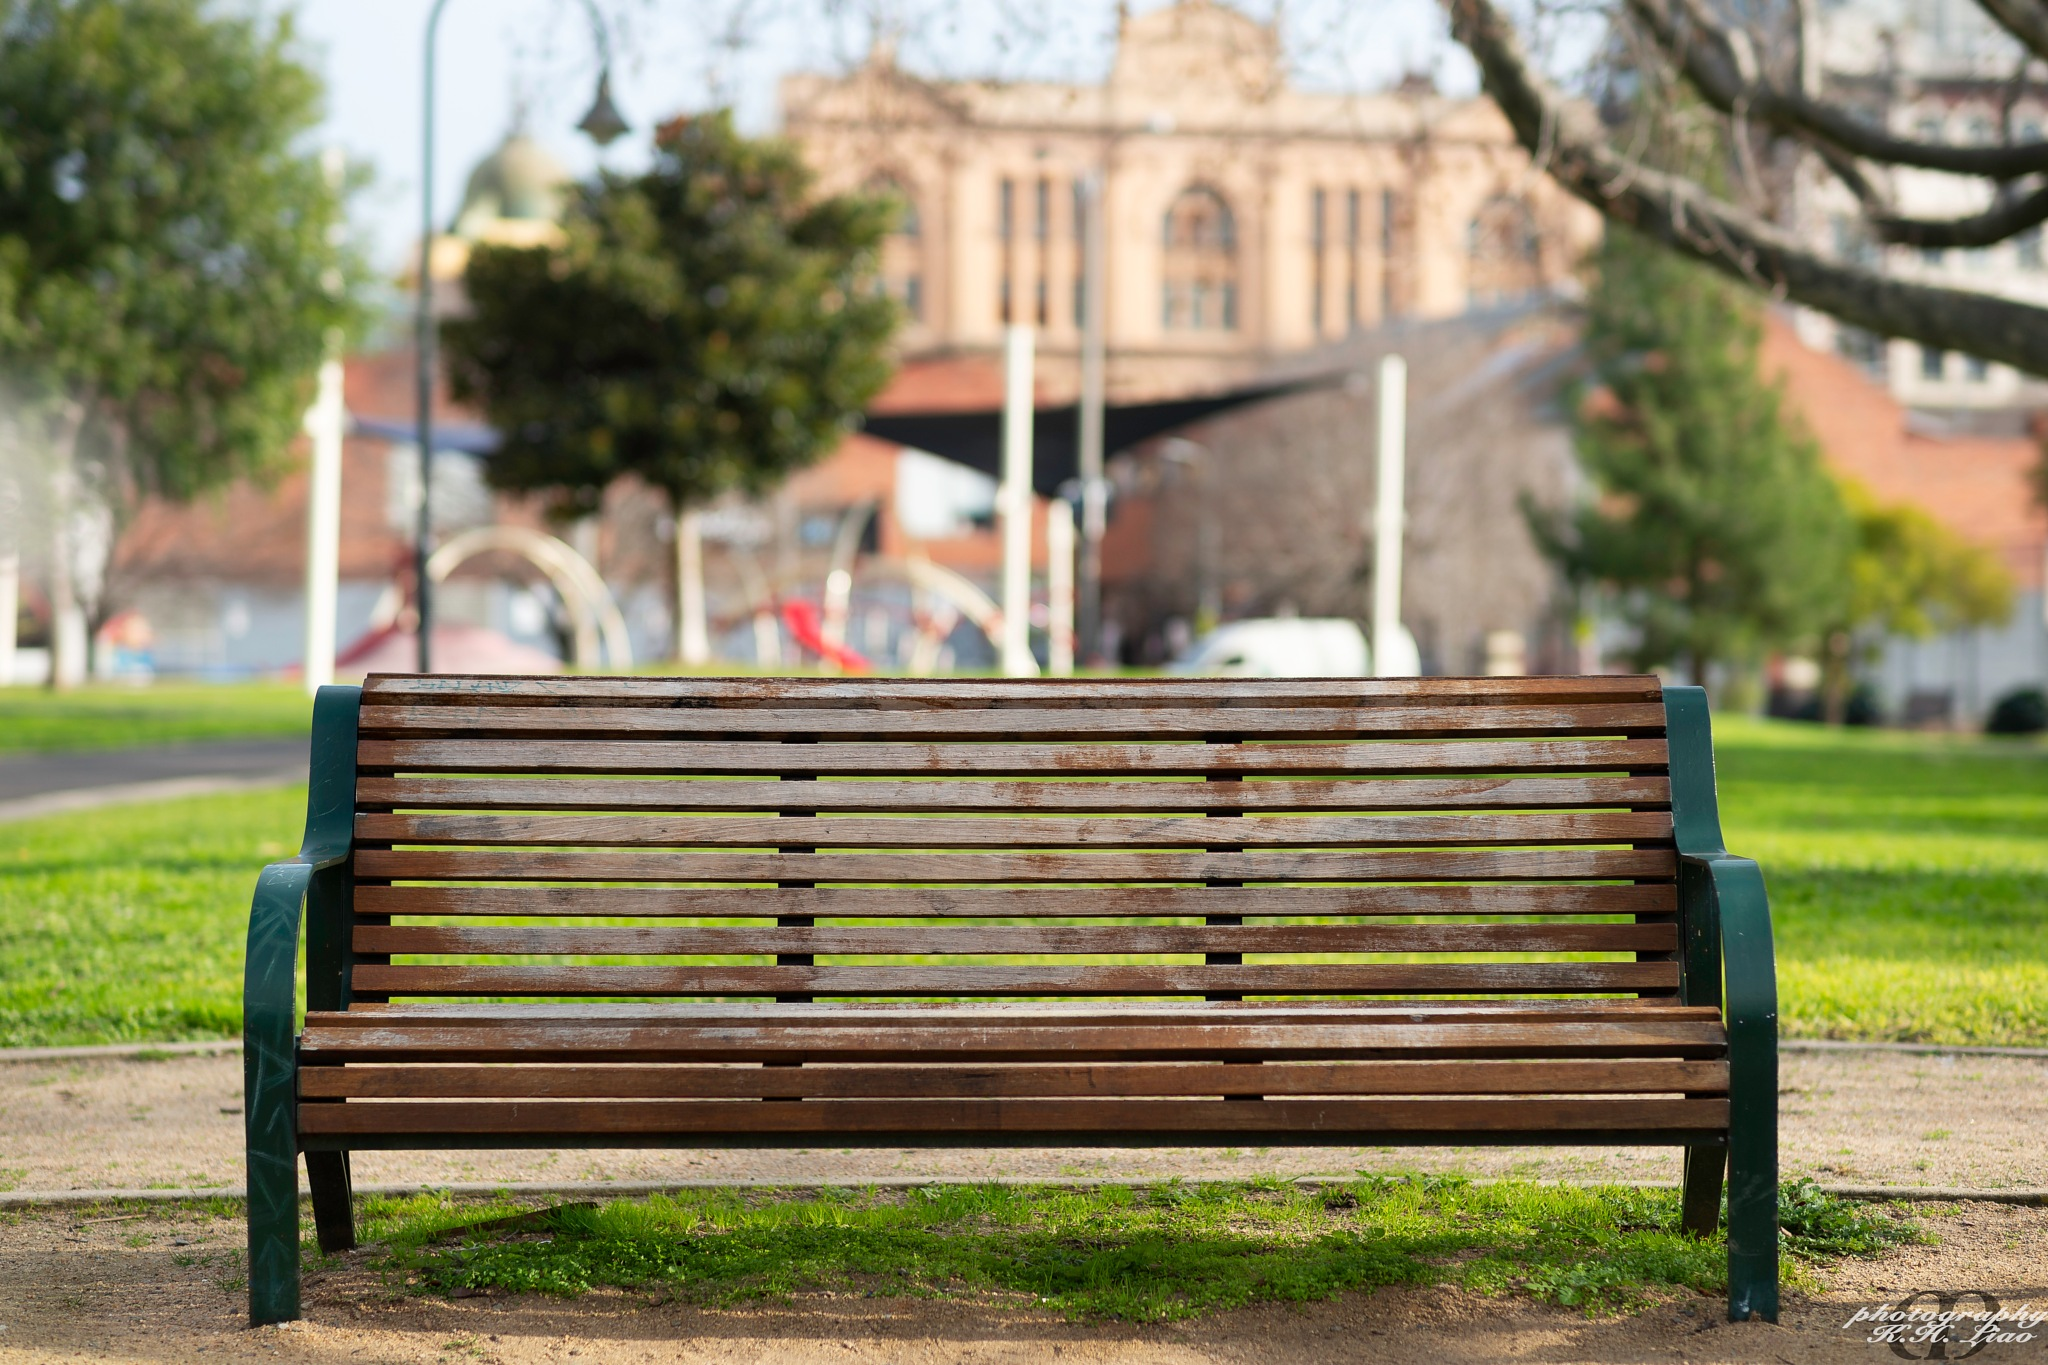 Simple Bench by Moore Liao